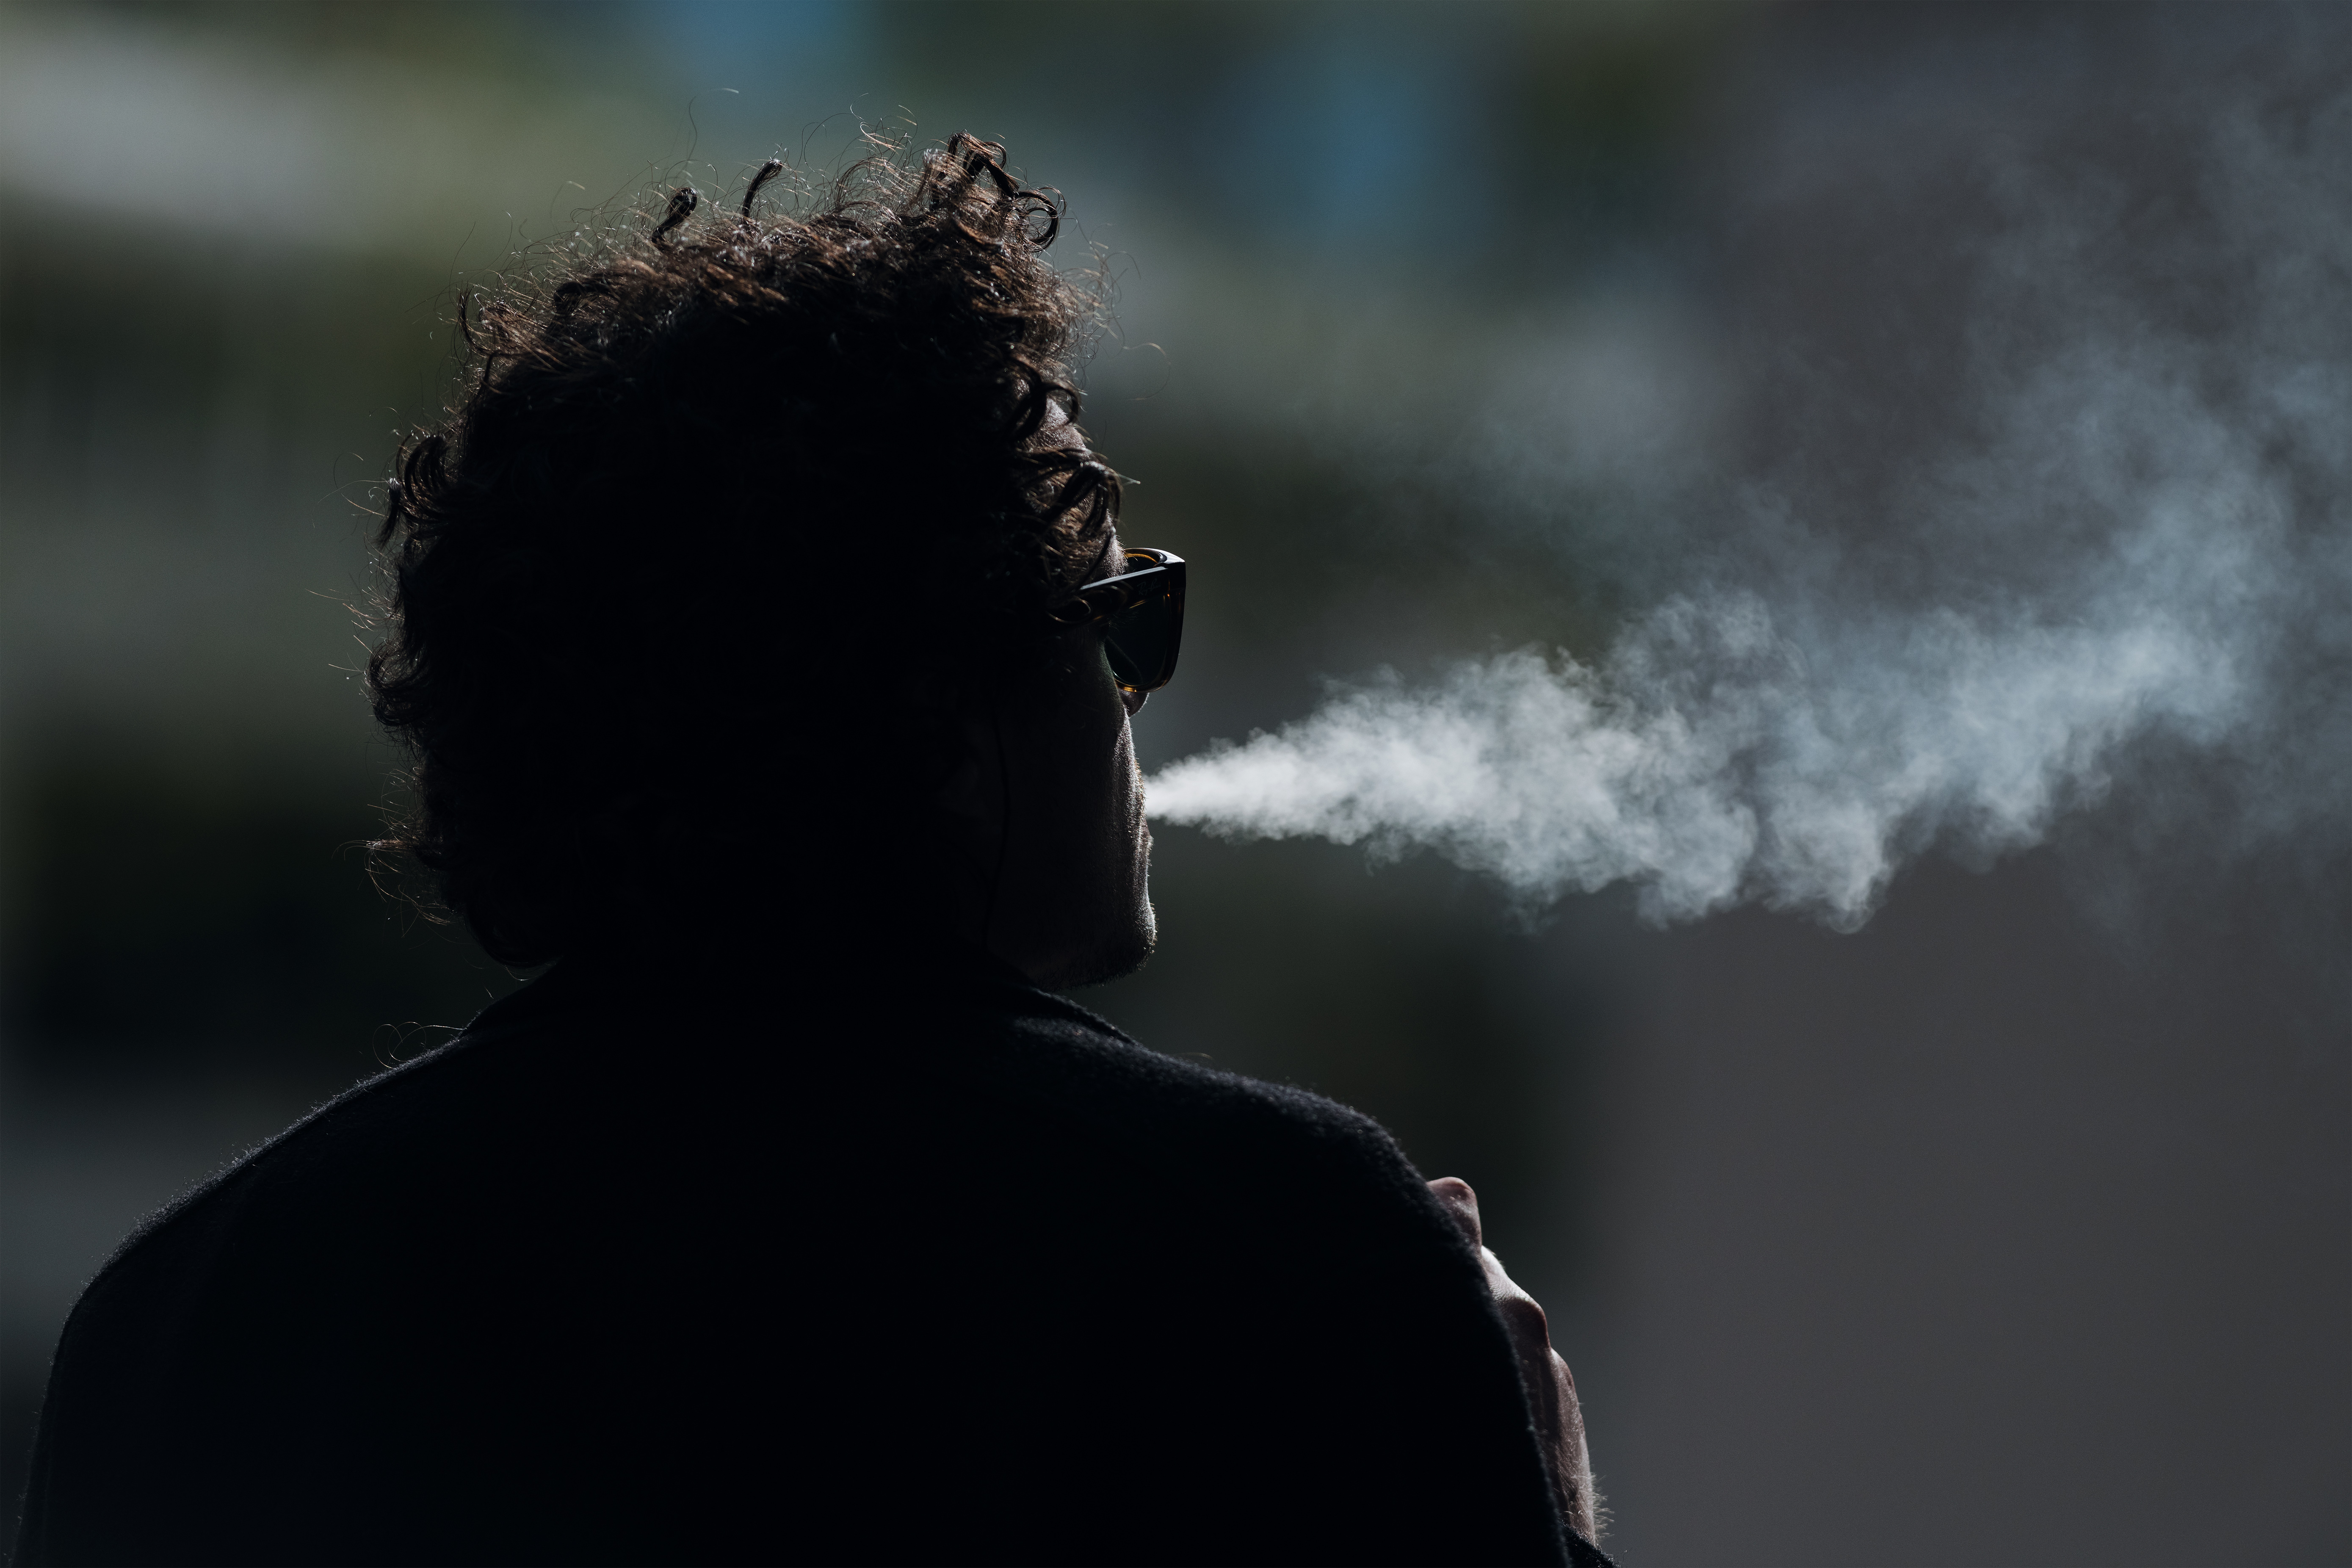 Australia has tightened its vaping laws, in a bid to crackdown on the illegal use and sale of nicotine vaping products.